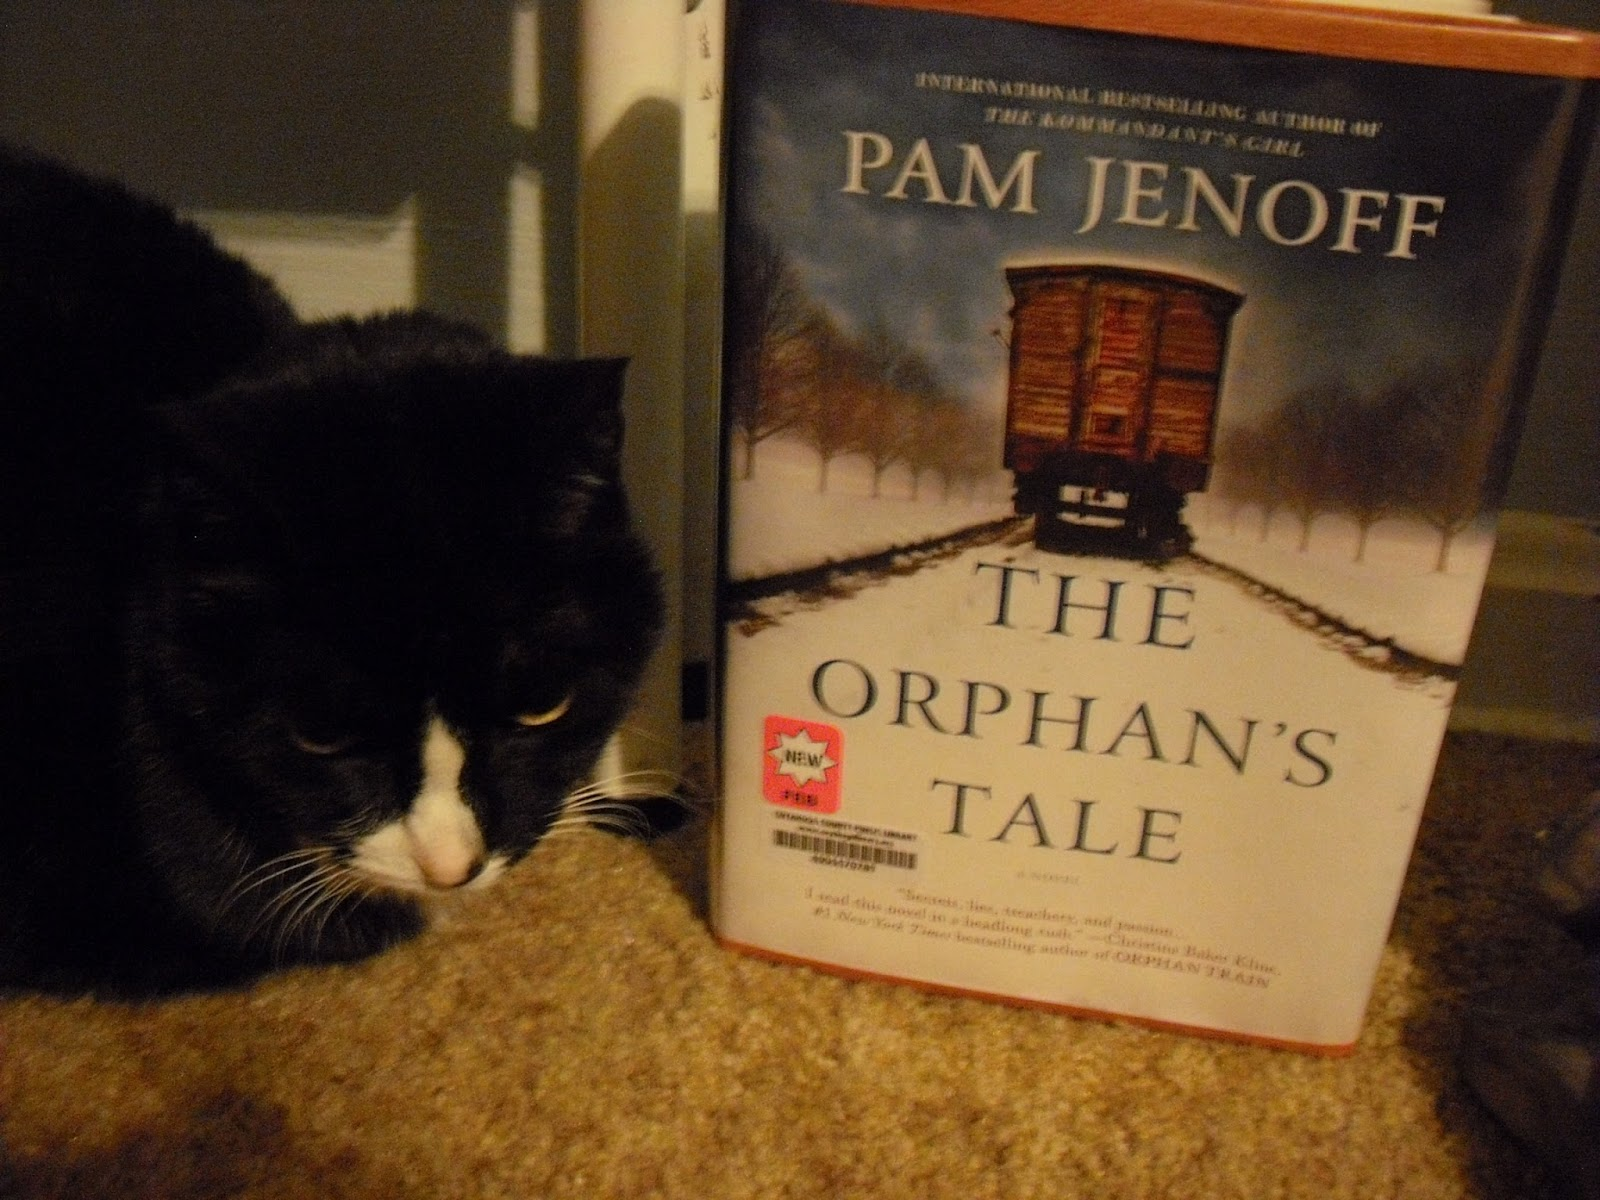 The Orphan's Tale by Pam Jenoff (2017, Paperback)